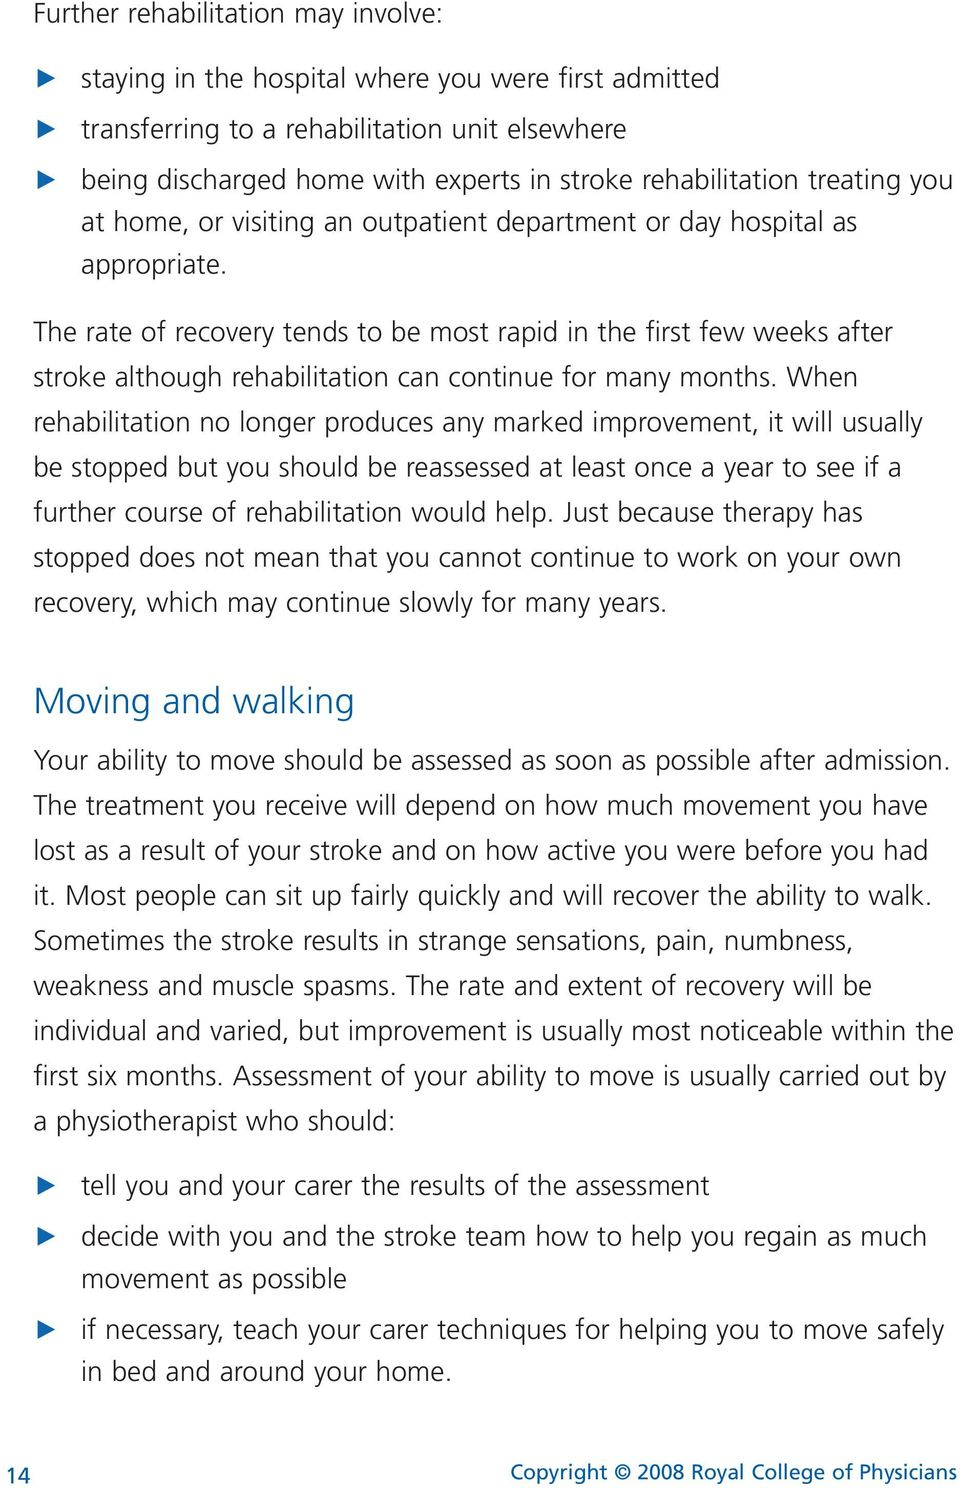 Te rate of recovery tends to be most rapid in te first few weeks after stroke altoug reabilitation can continue for many monts.